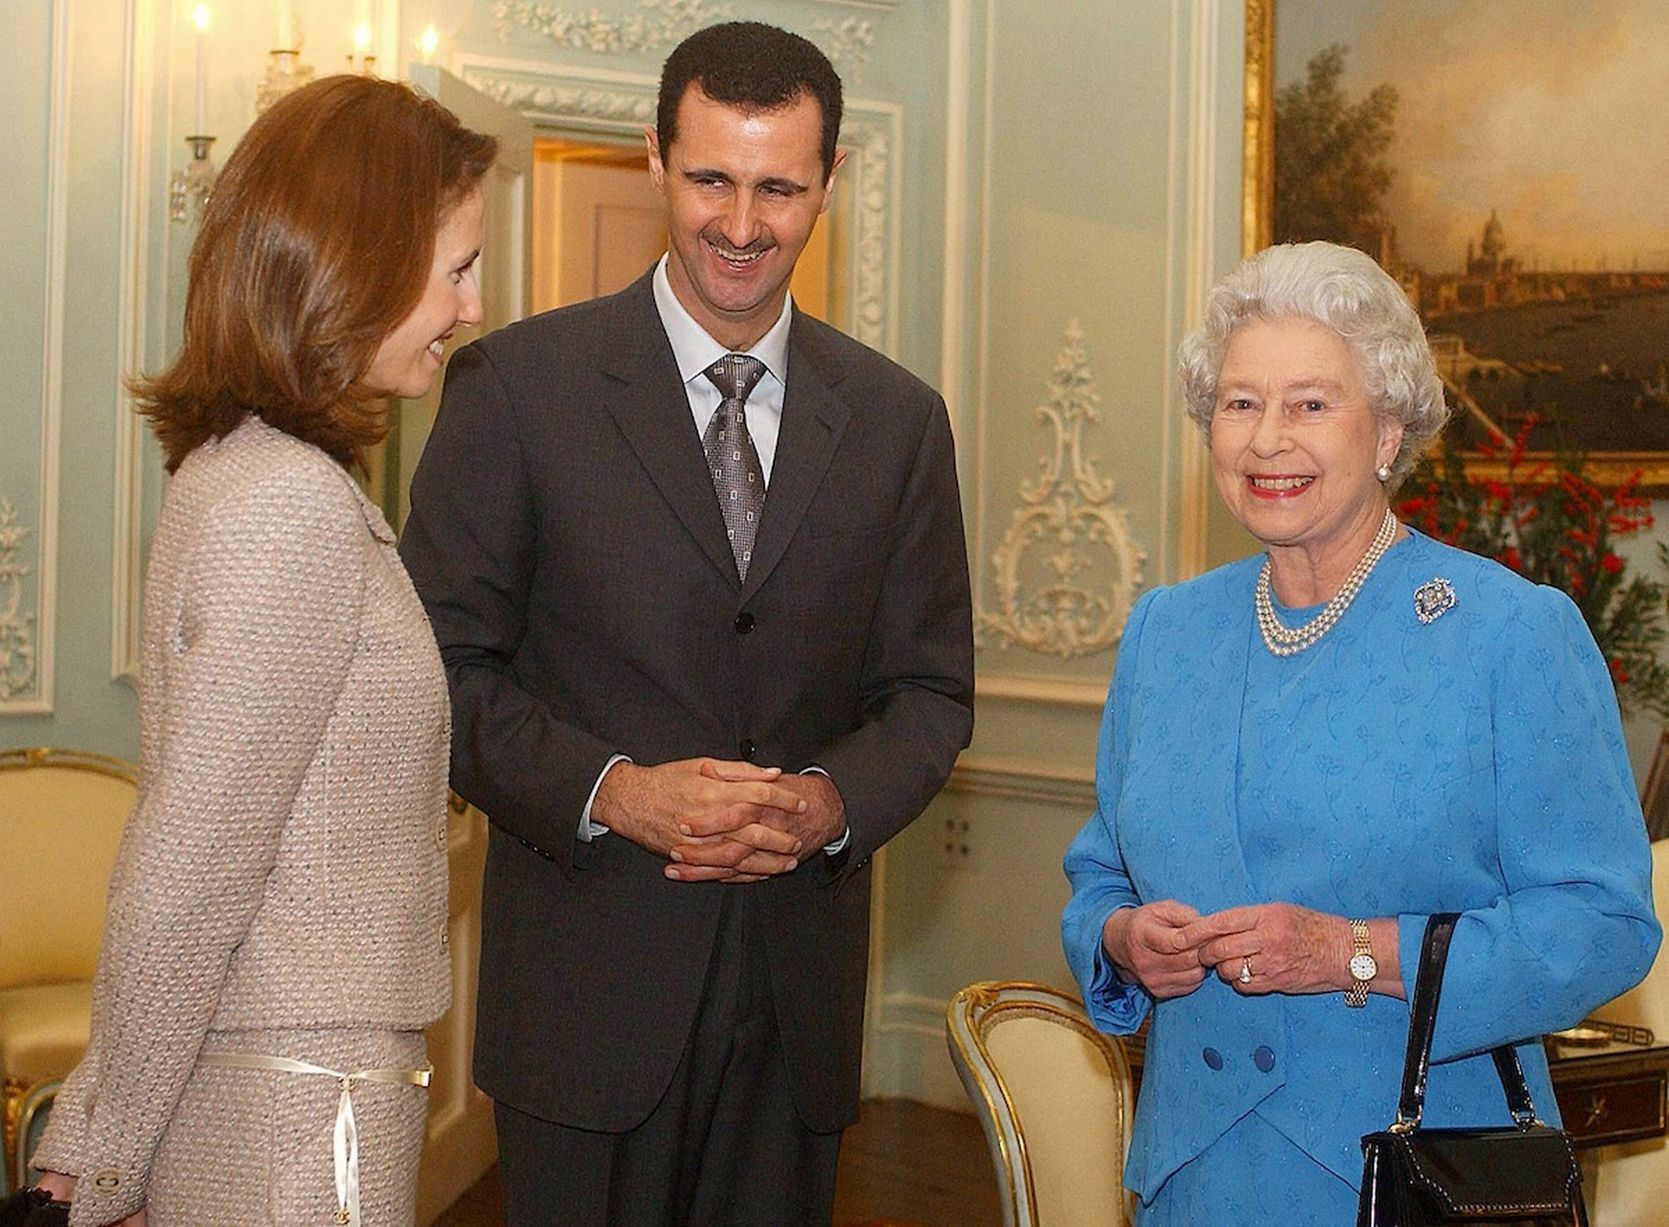 https://i0.wp.com/i2.mirror.co.uk/incoming/article7782365.ece/ALTERNATES/s1227b/Queen-Elizabeth-II-and-Syrias-President-Bashar-al-Assad-with-wife-Asma.jpg